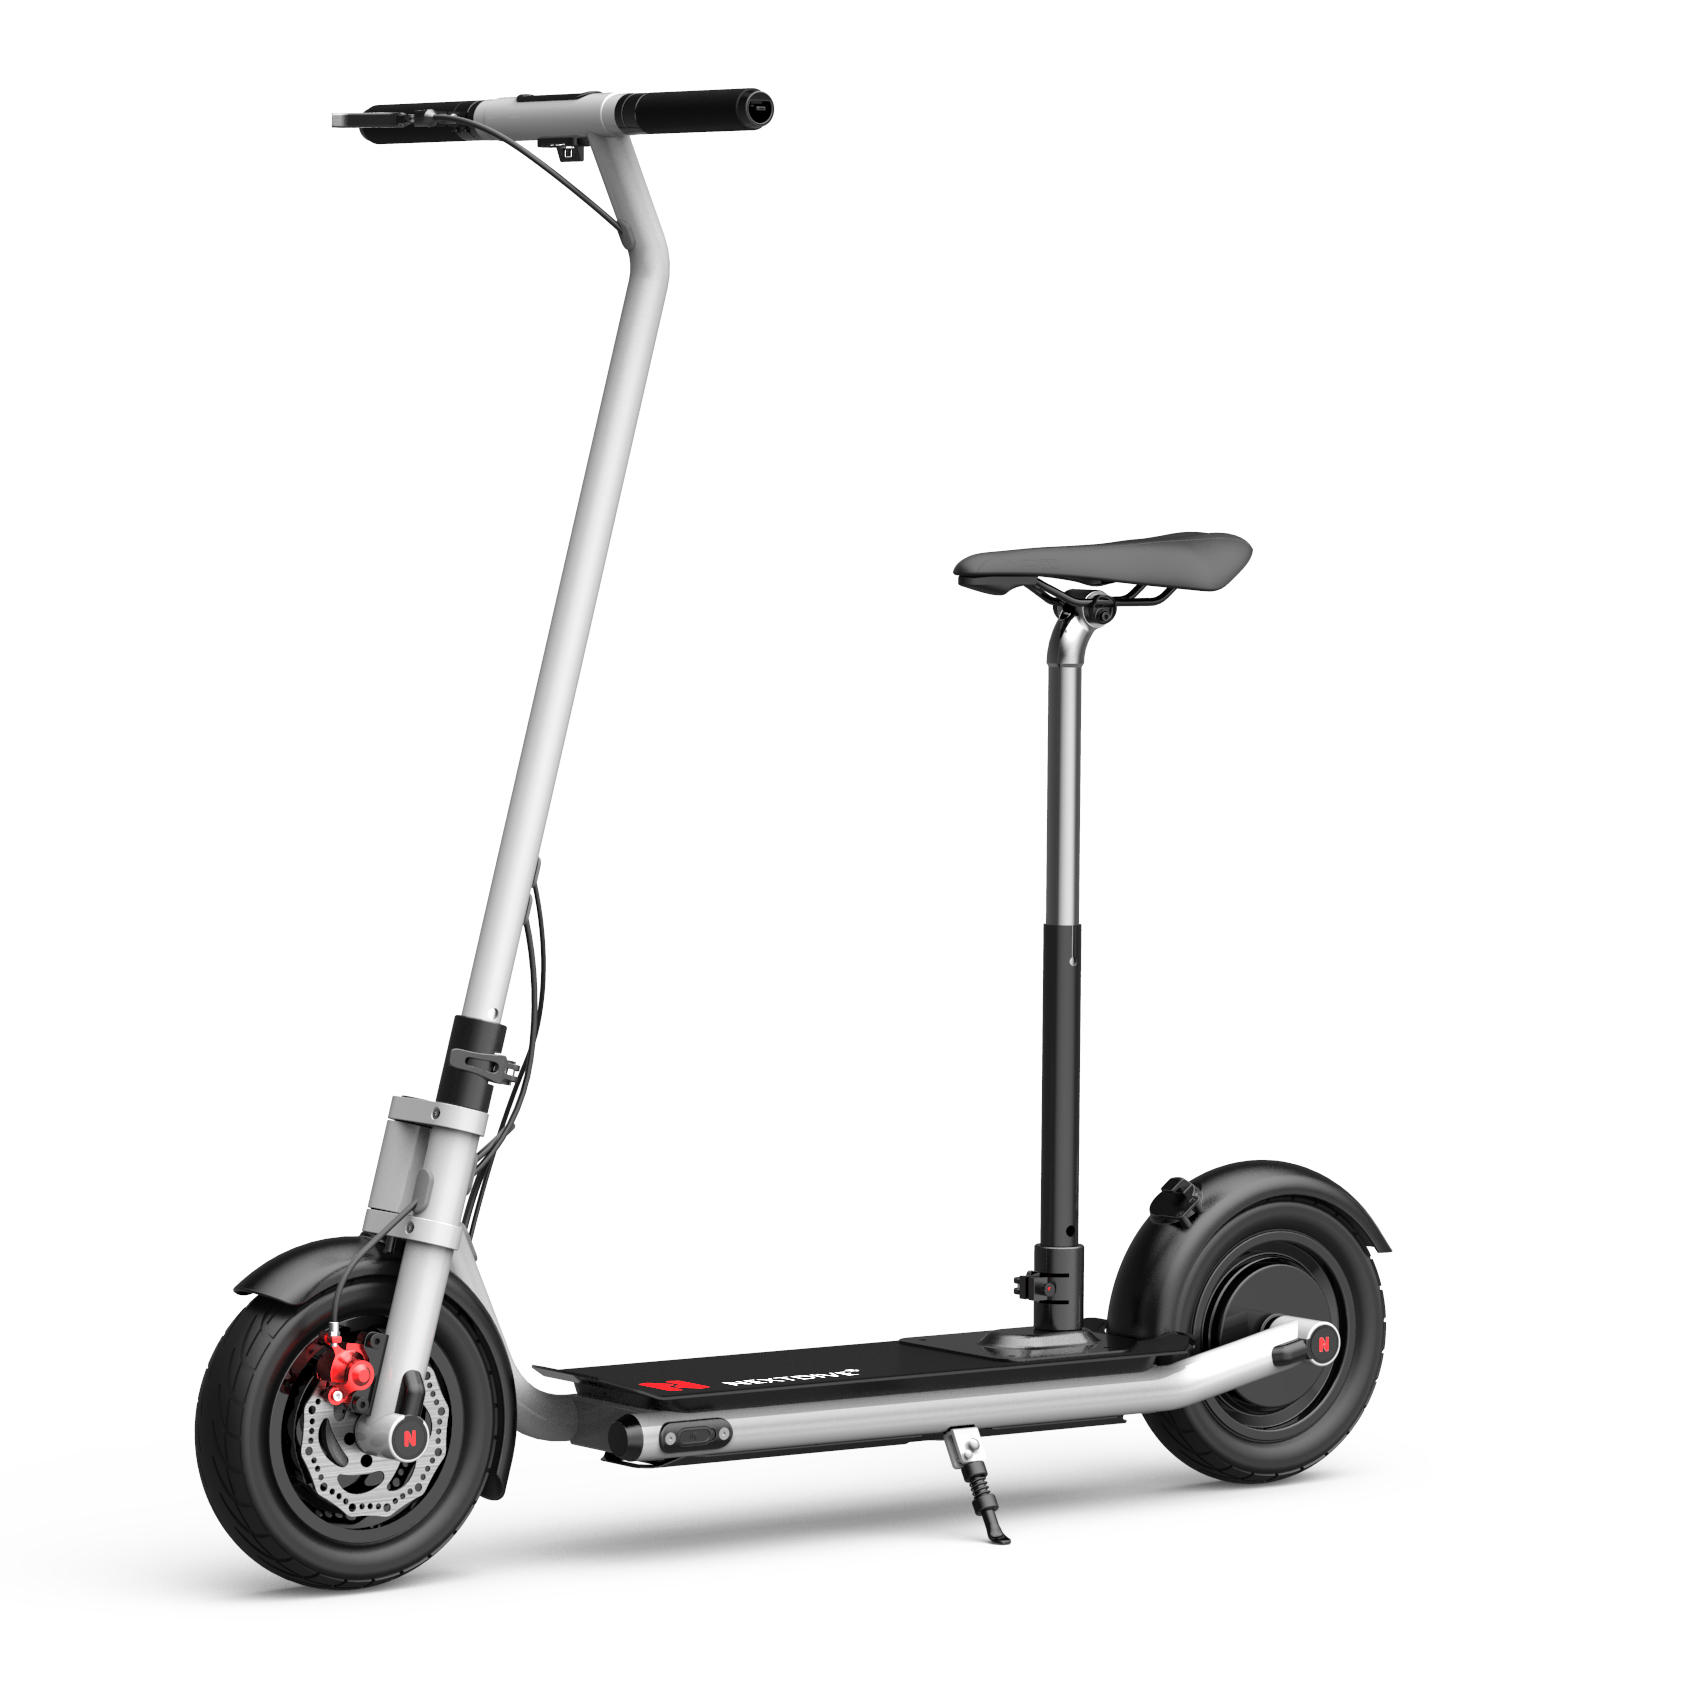 NEXTDRIVE N-7 300W 36V 10.4Ah Foldable Electric Scooter